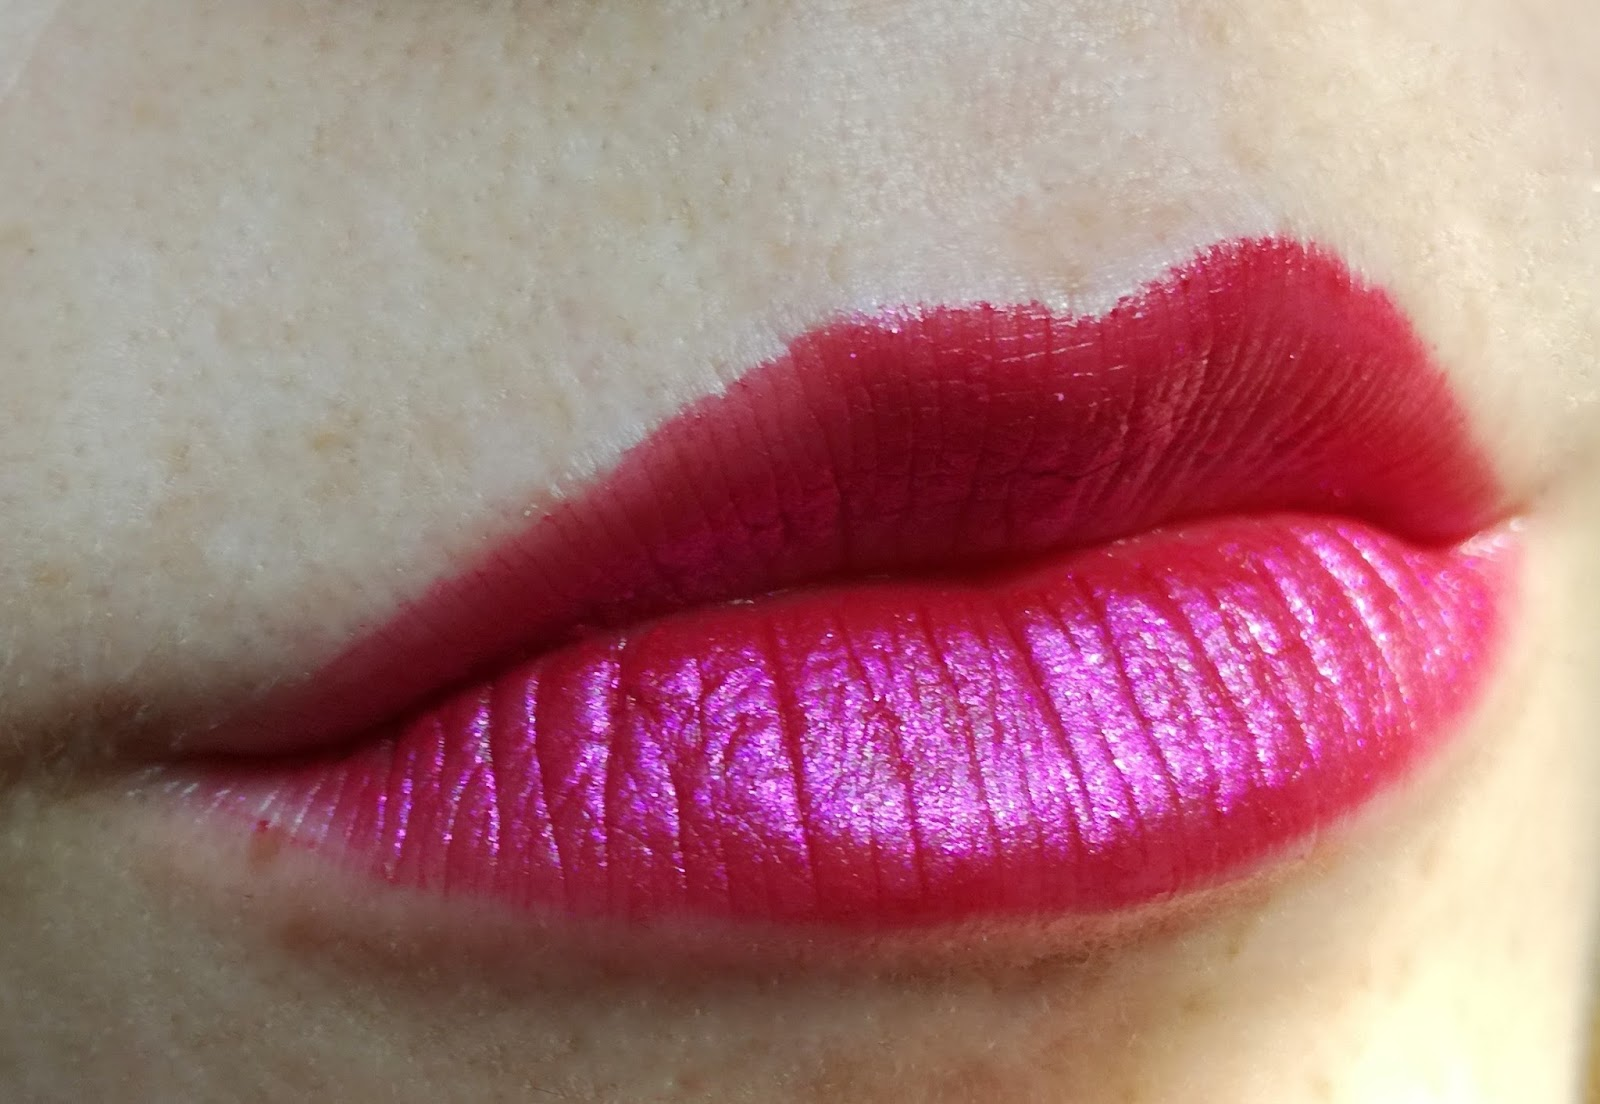 artdeco-glamour-crystal-garden-collection-matte-lipstick-hibiscus-blossom-powder-lip-finish-swatch